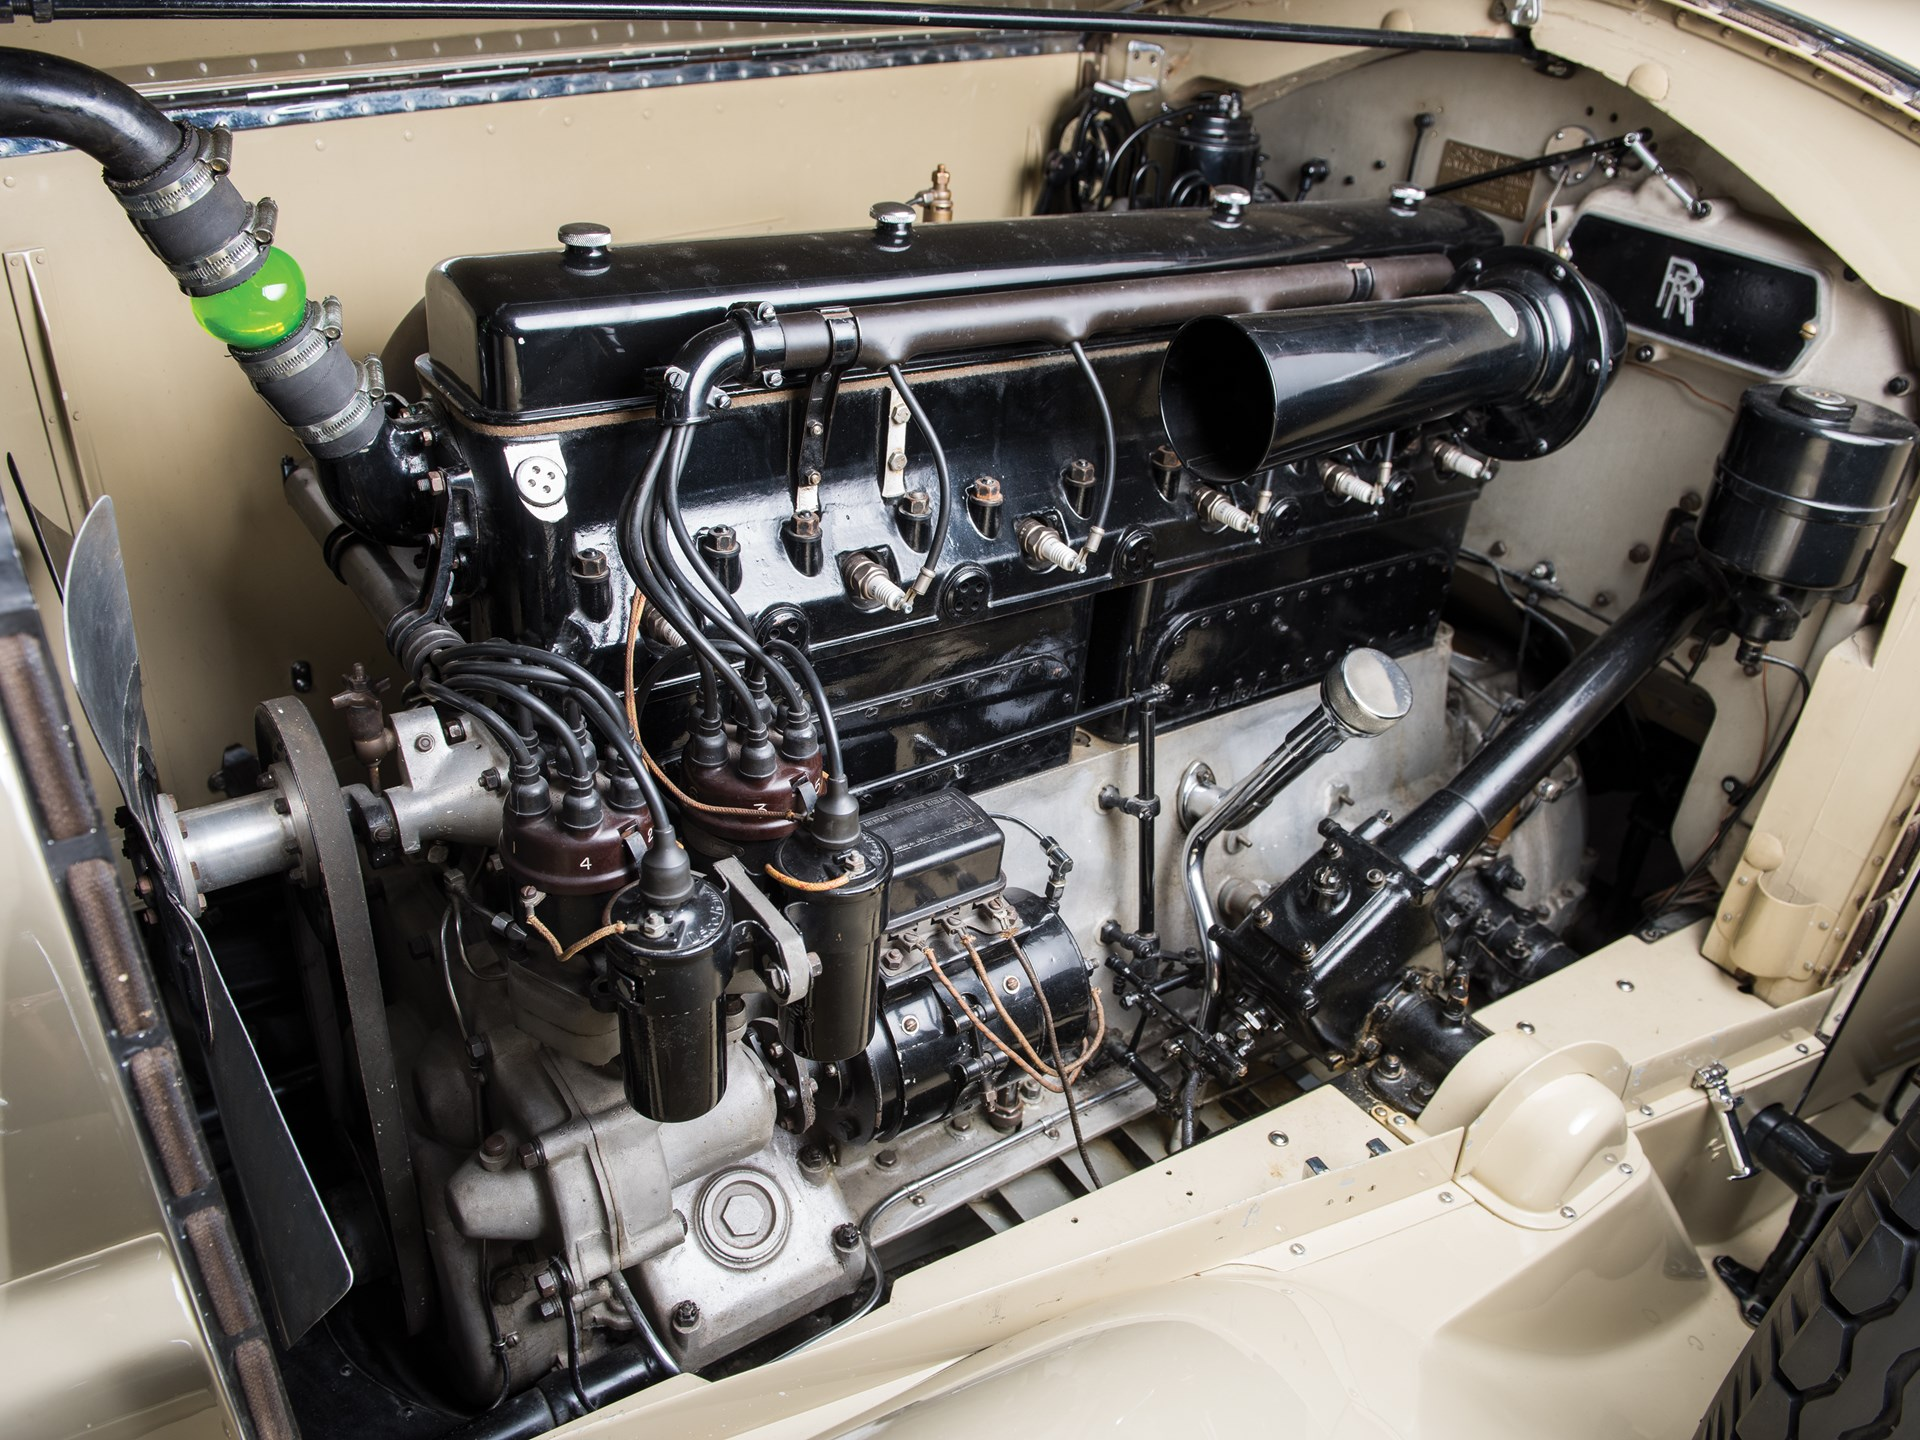 1929 Rolls-Royce Phantom I Henley Roadster by Brewster